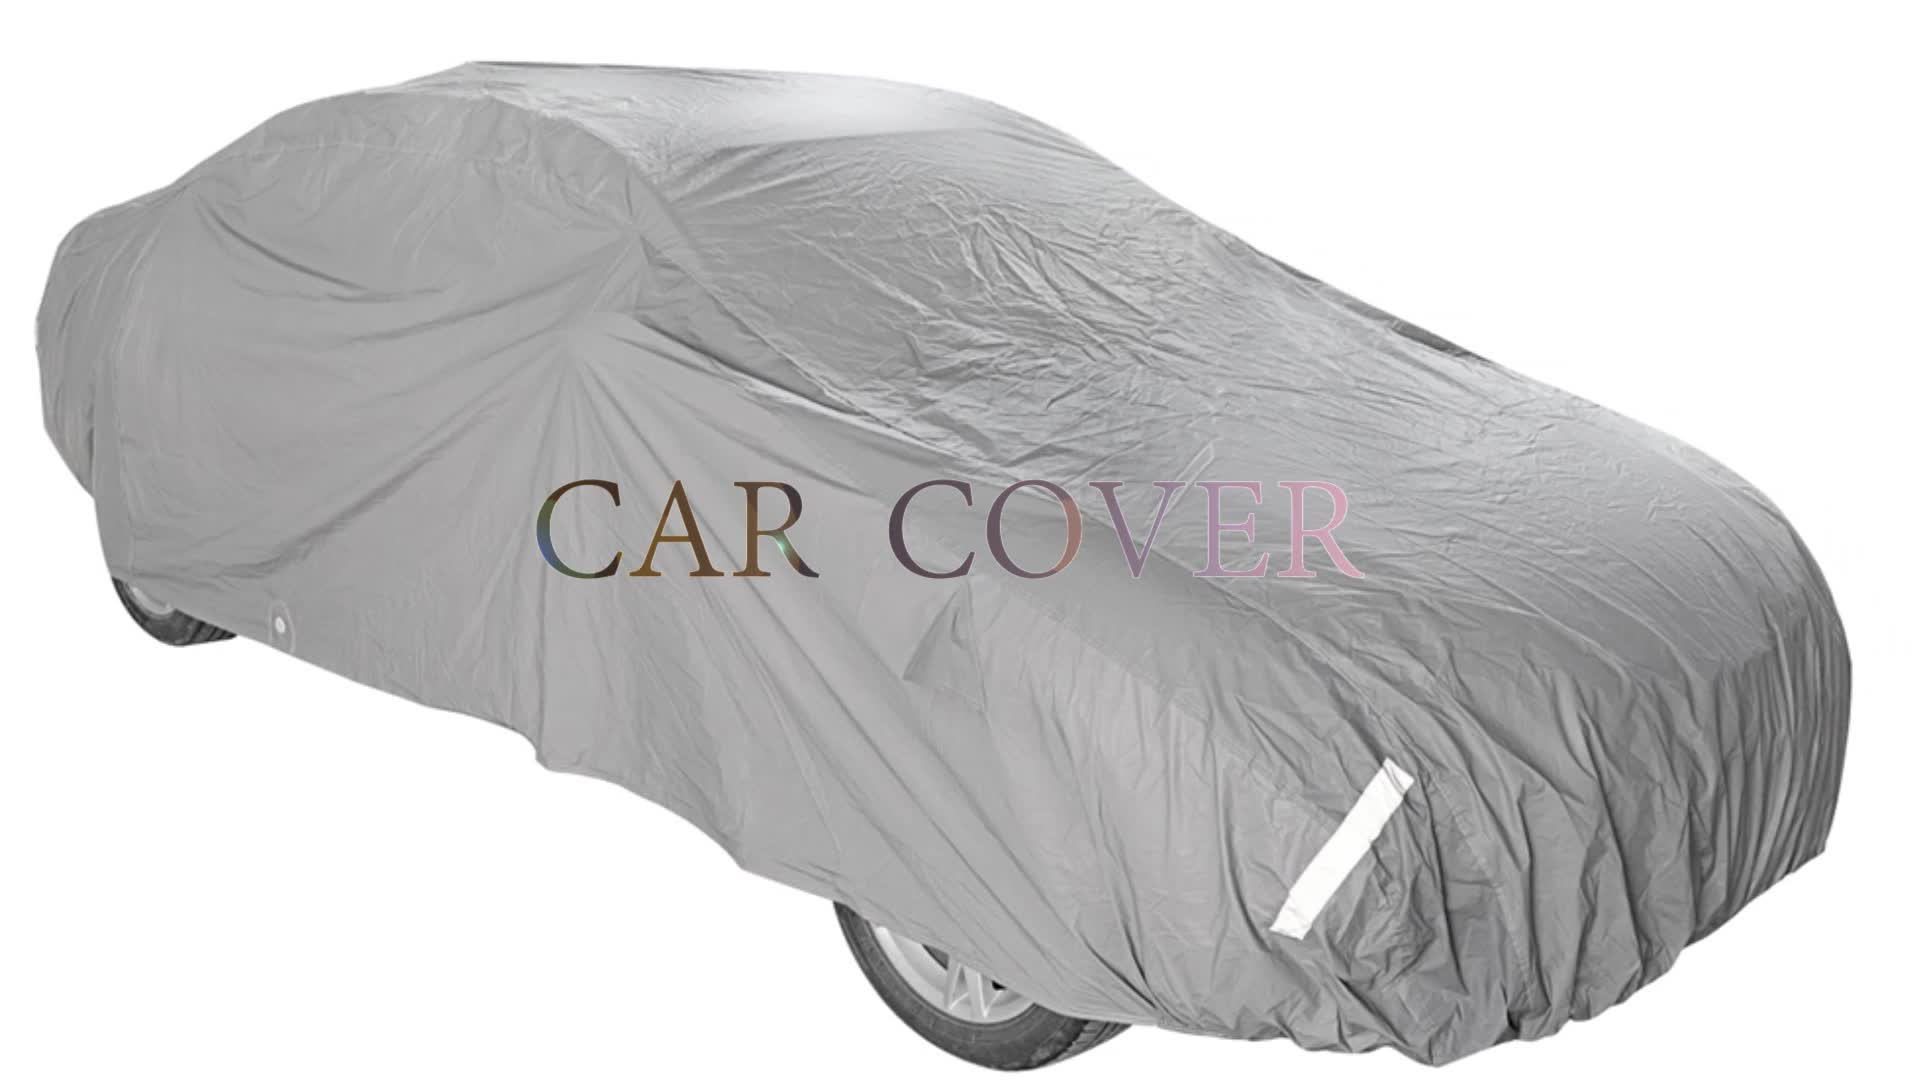 8-yesrs Factory Inventory Universal Fit Car Cover for 2-days delivery